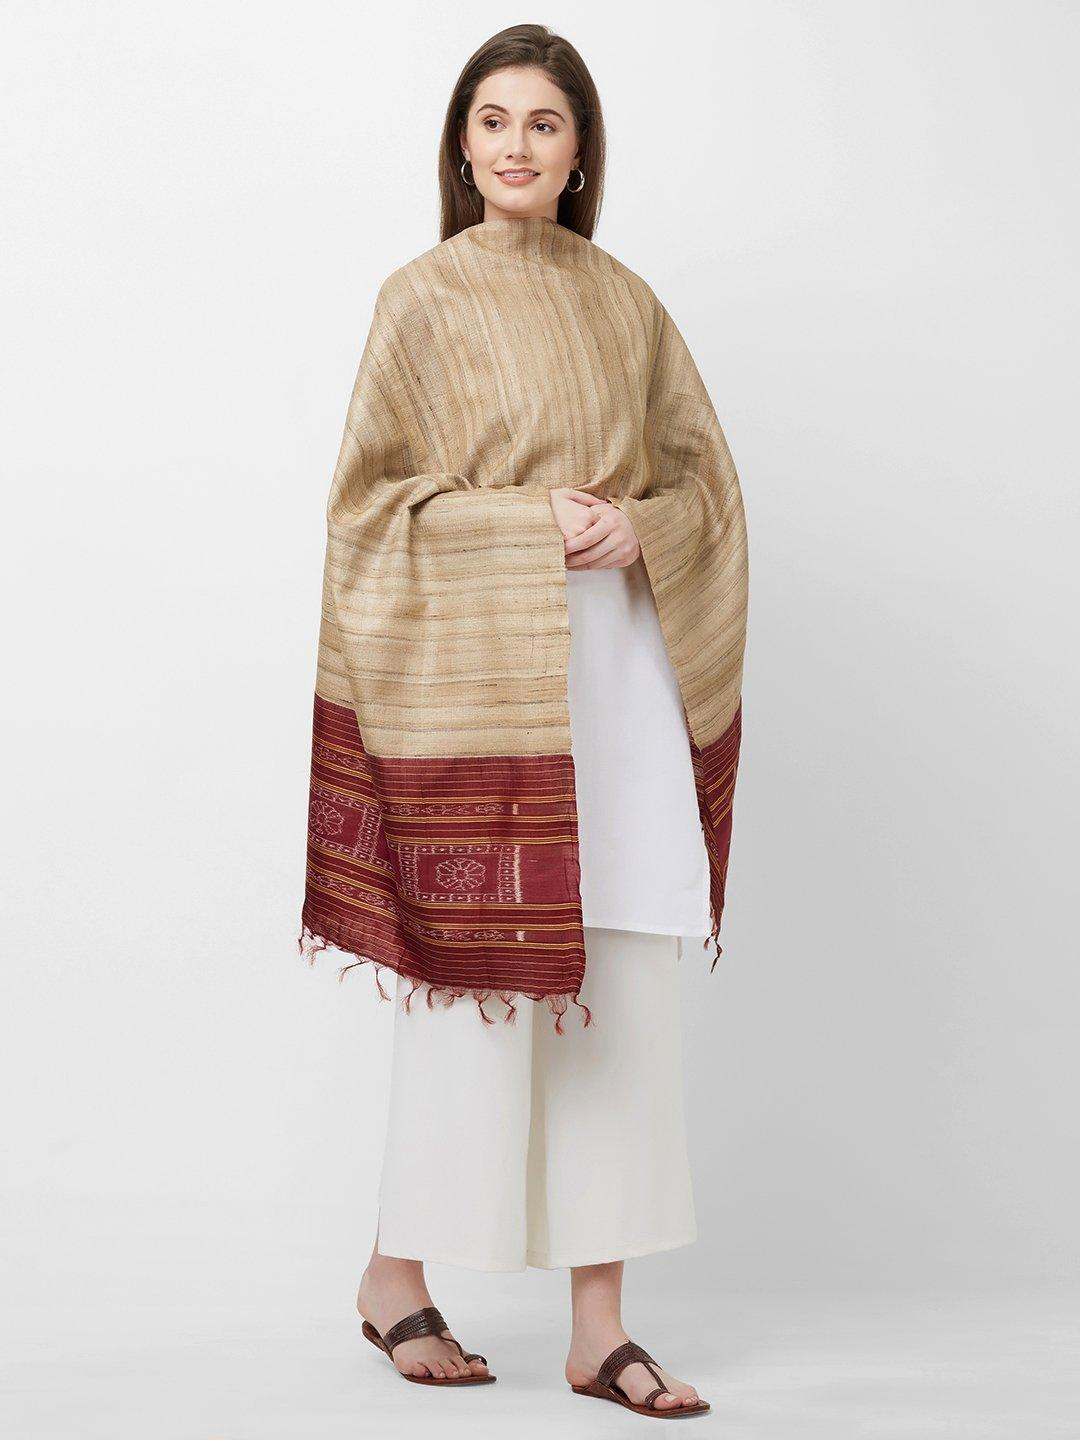 CraftsCollection.in -Beige and Maroon Tussar Silk Sambalpuri Stole